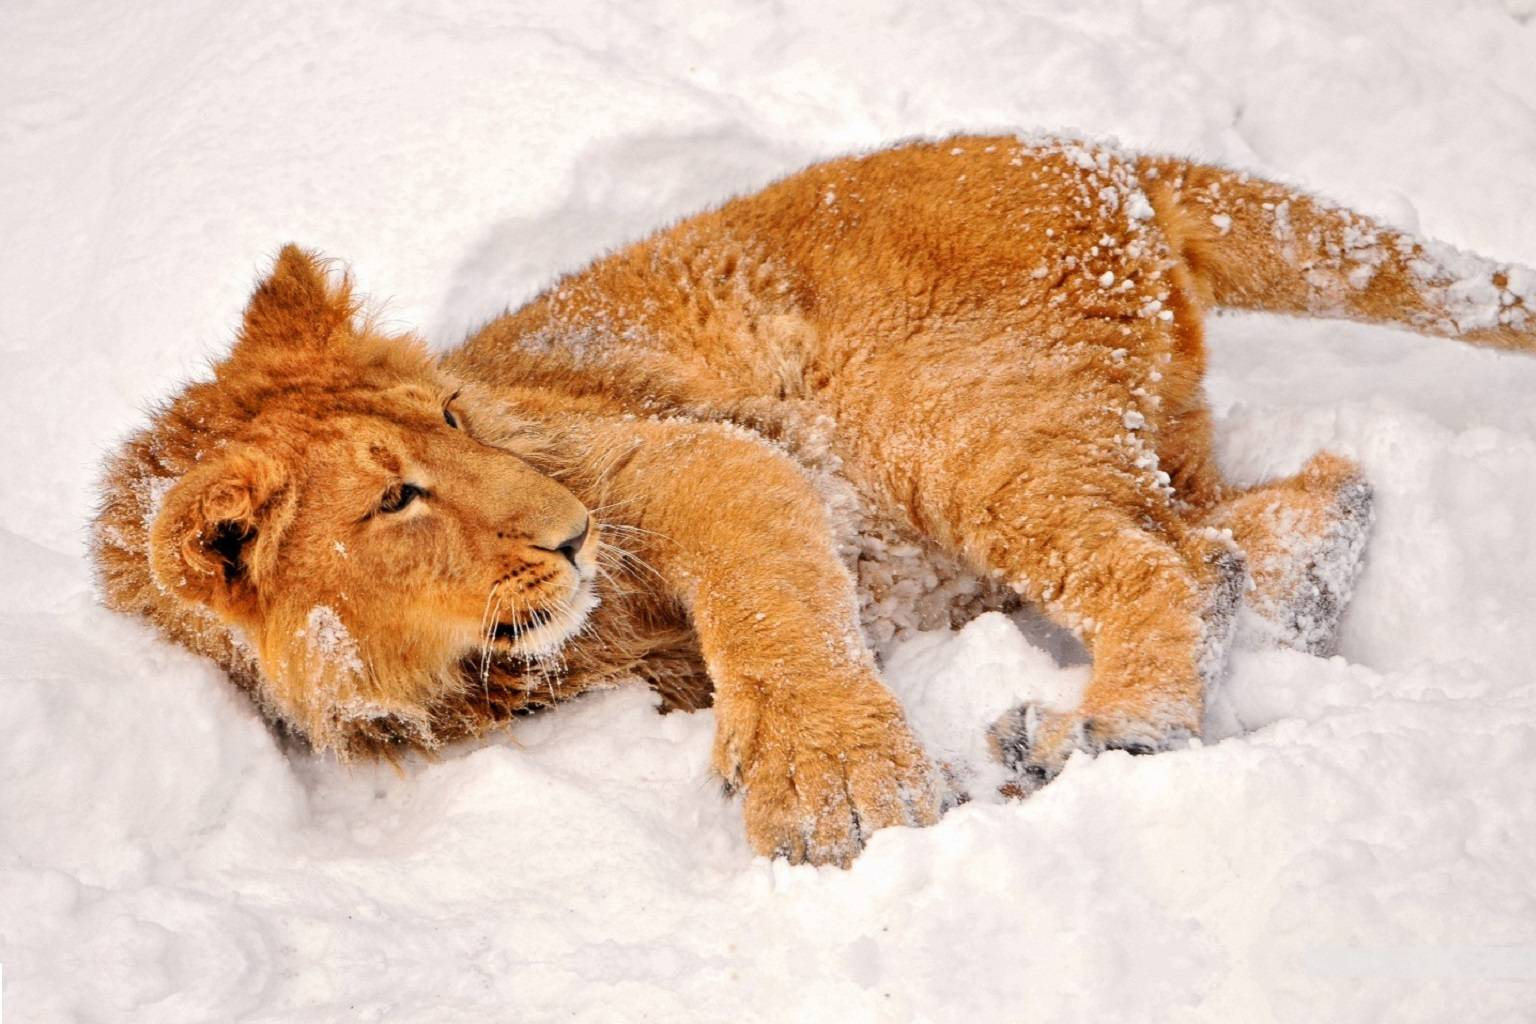 Chilly Cub